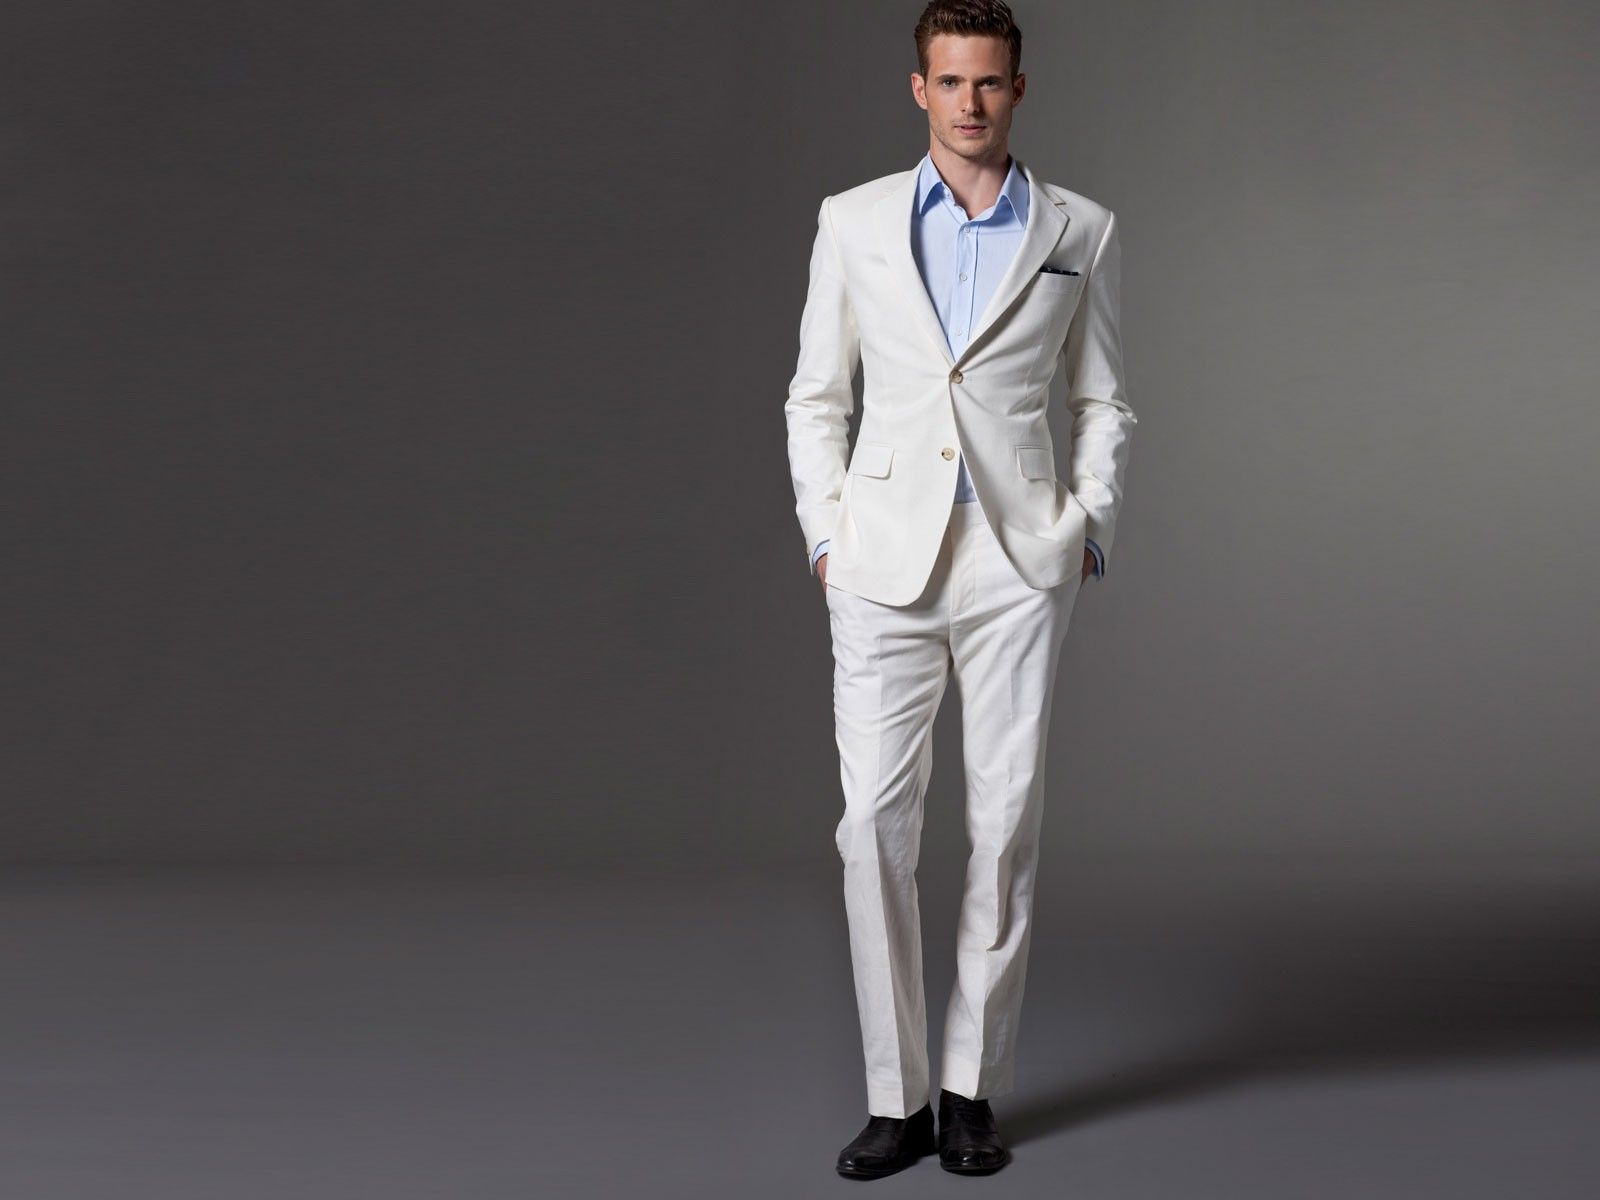 White linen suit by Indochino. $349.00